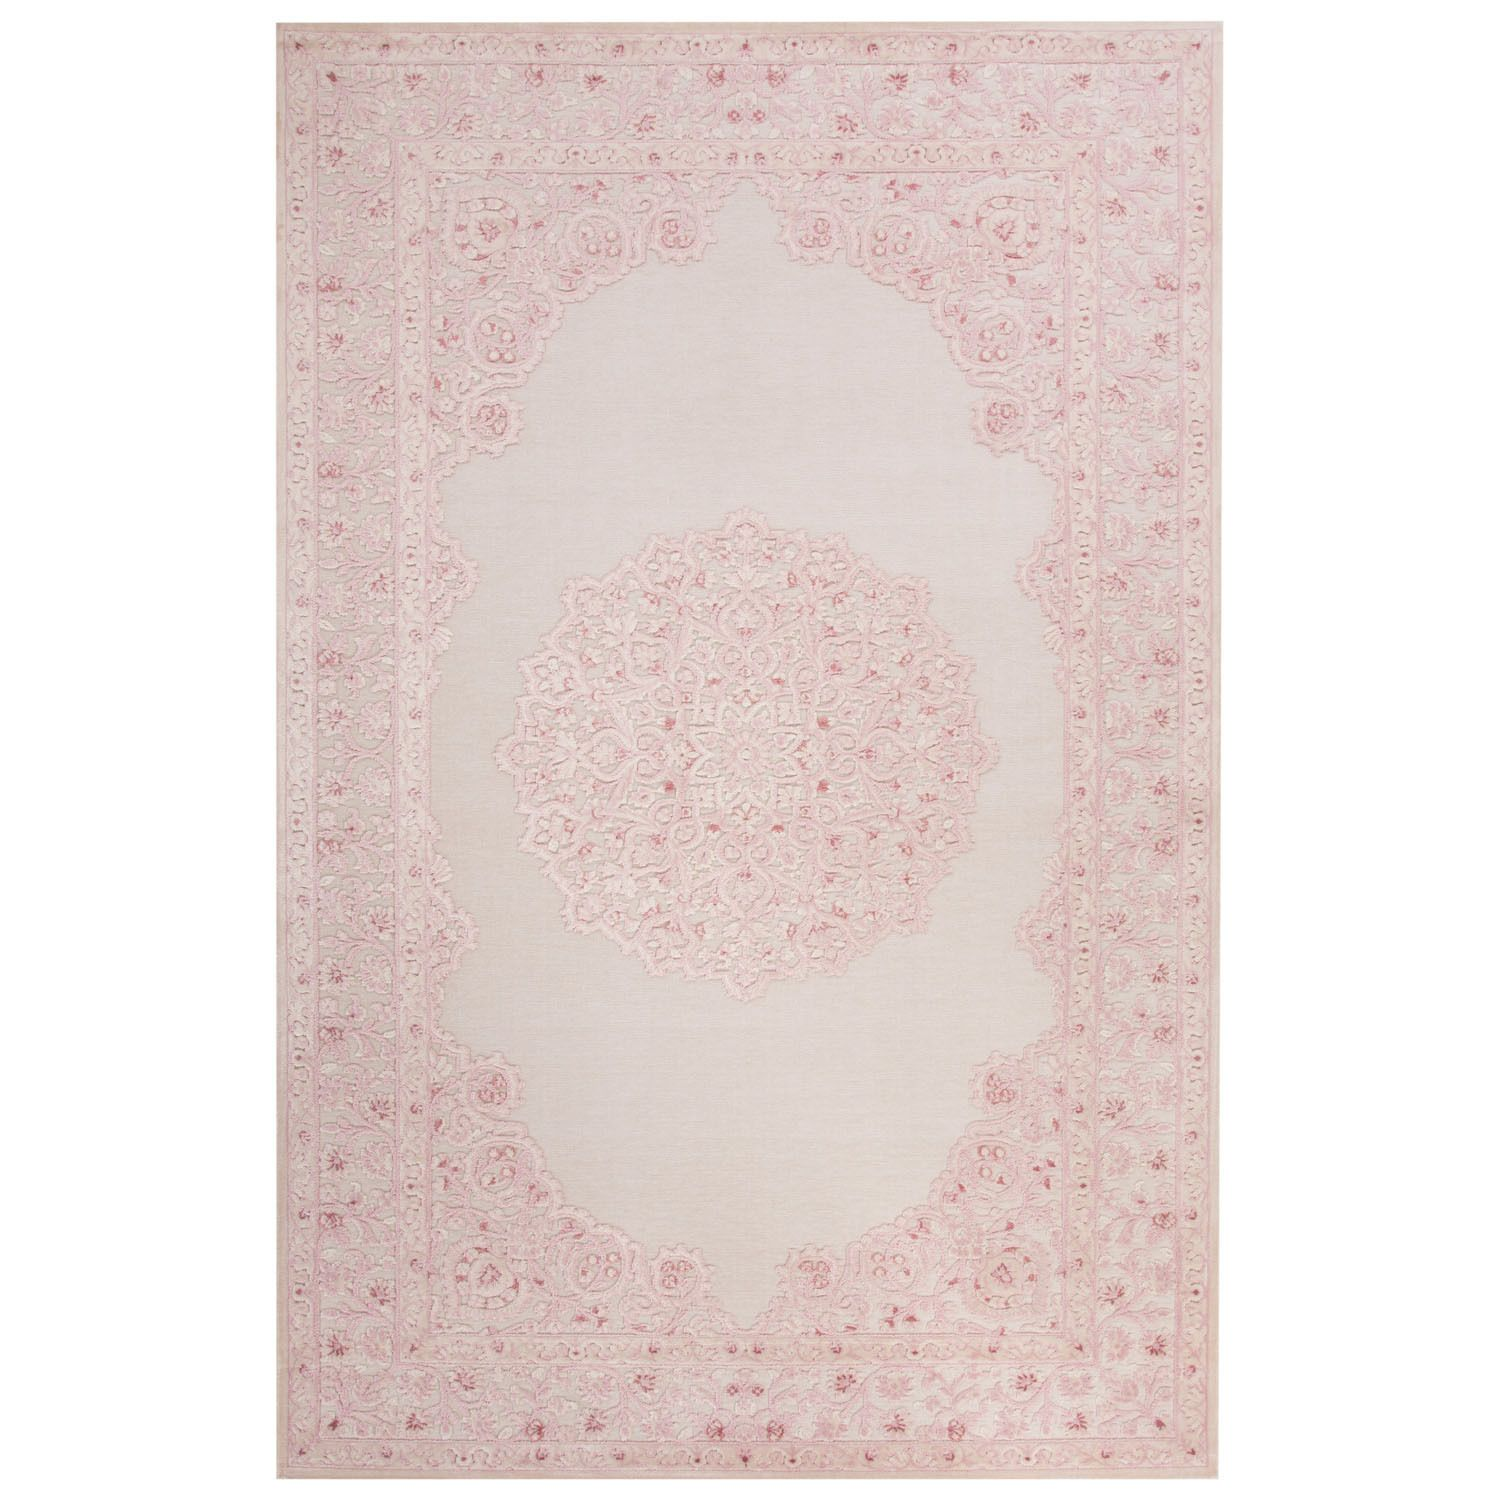 Maison Rouge Edith Medallion Pink White Area Rug 5 X 7